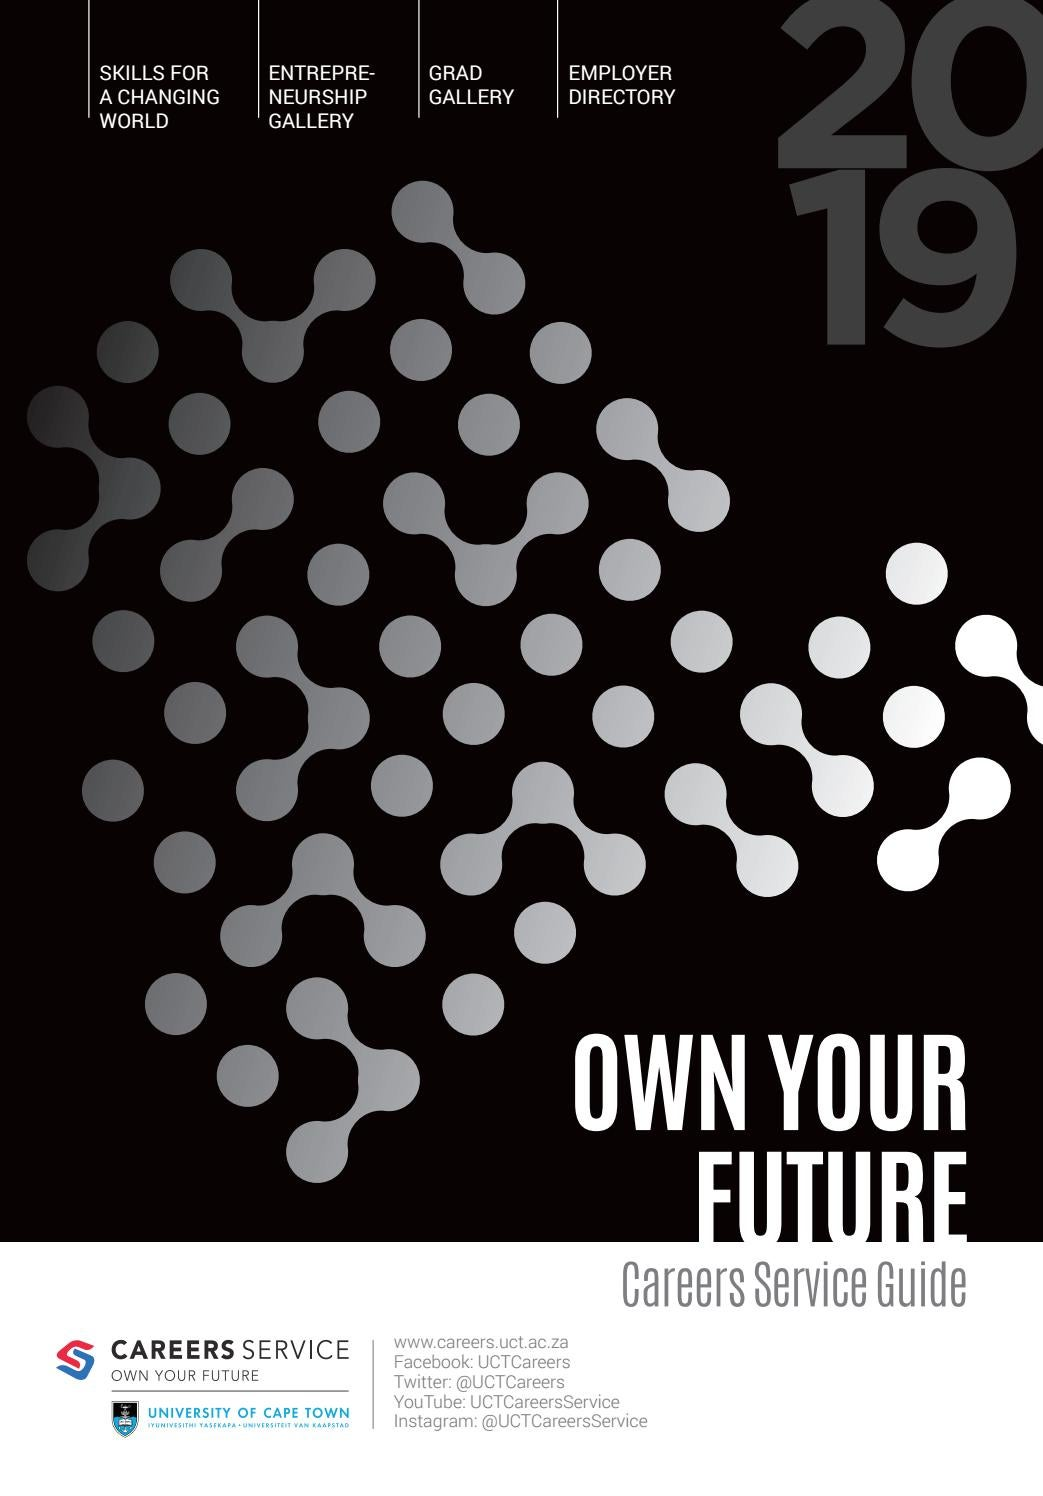 2019 Careers Service Guide by UCT Careers - issuu